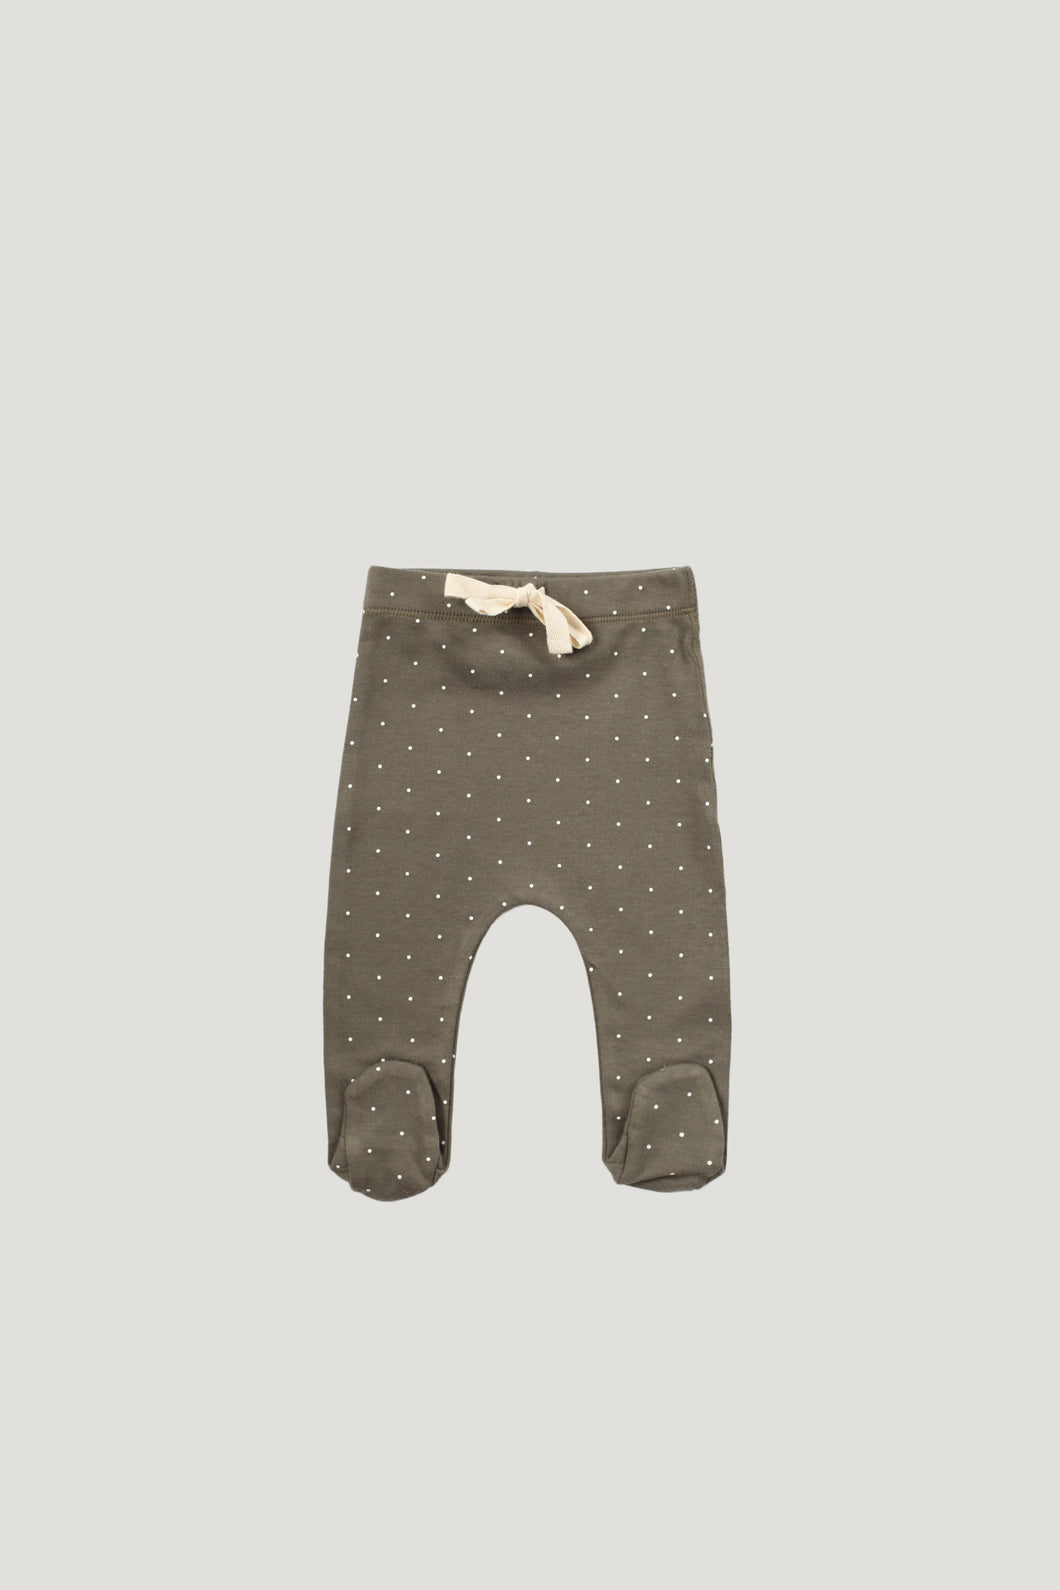 Jamie Kay Organic Cotton Footed Pants- Olive Dots